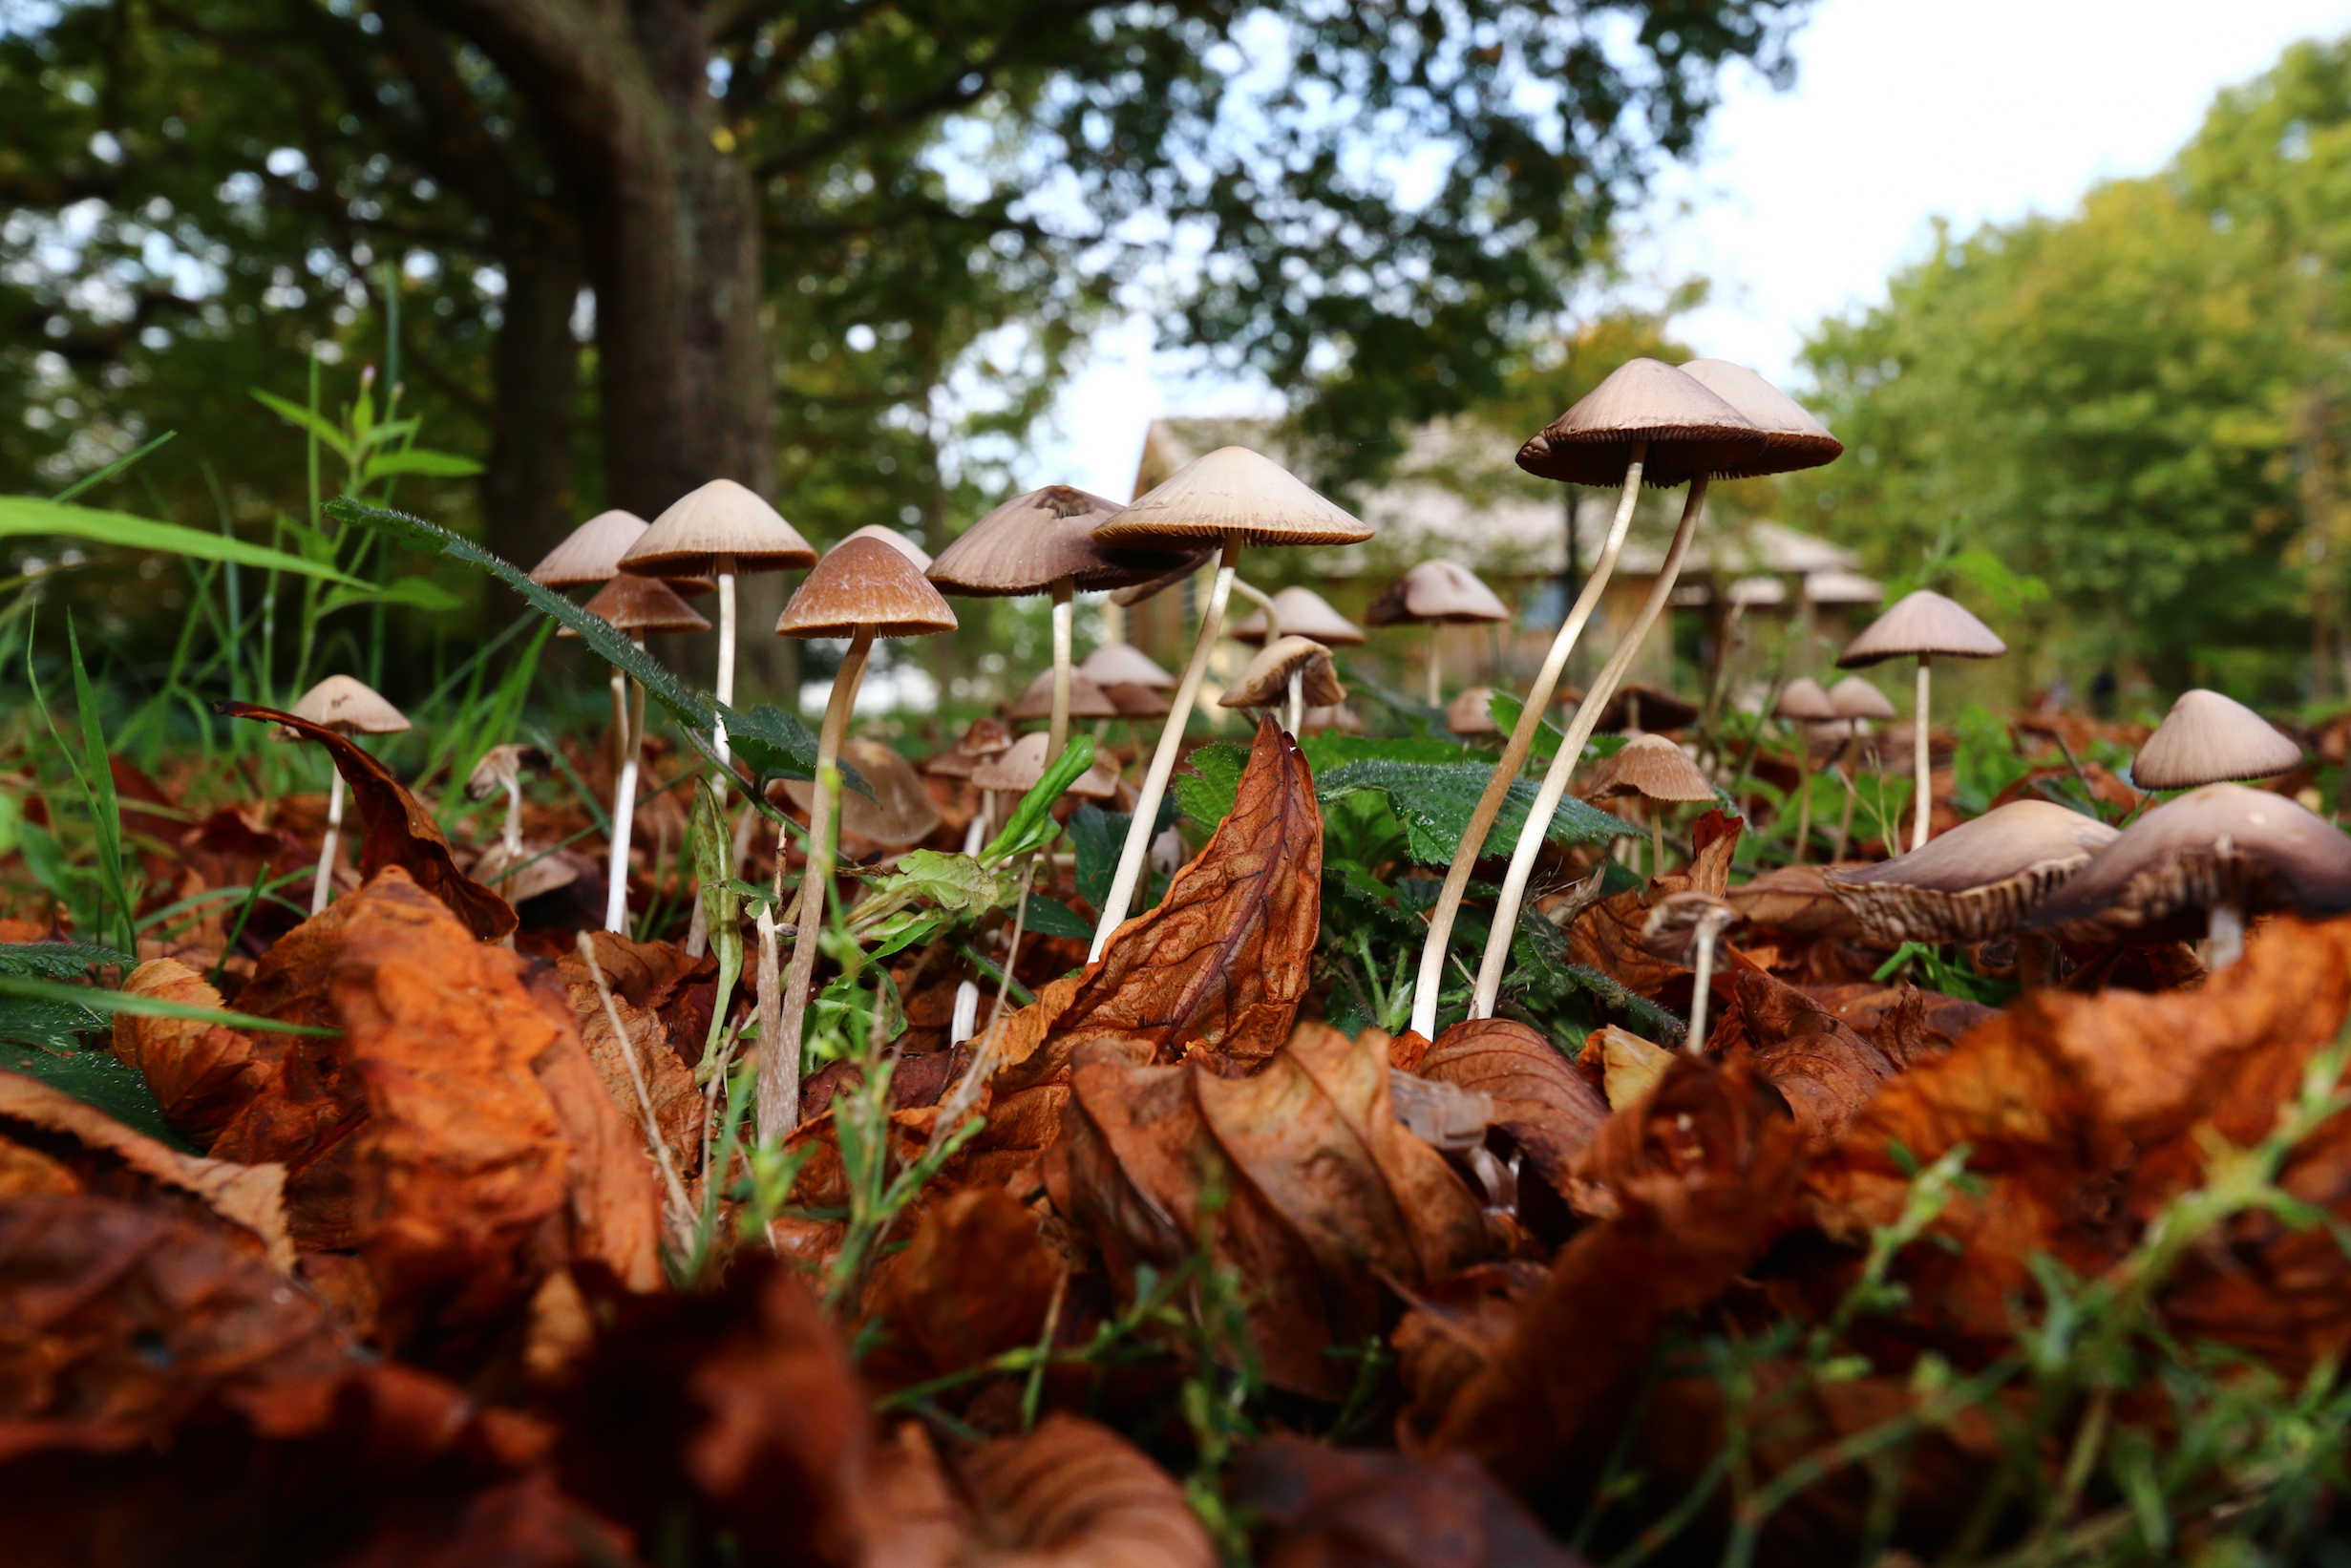 Experts have found that the genes responsible for the psychedelic compound psilocybin in magic mushrooms may have been adapted as a defense mechanism against fungus-eating insects.